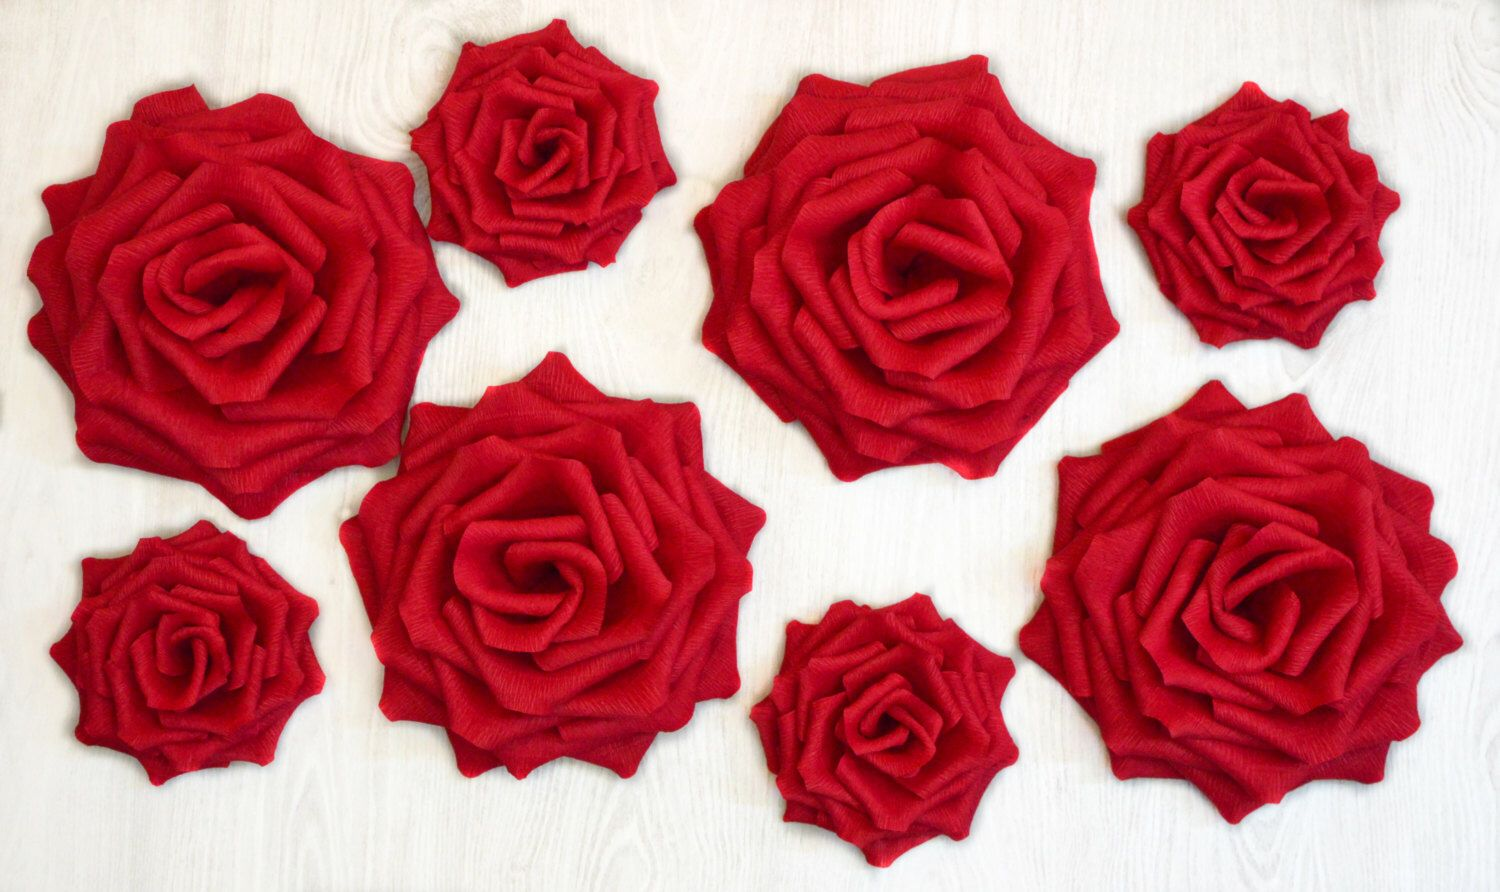 Giant Paper FlowersGiant Paper RosesWedding DecorationArch